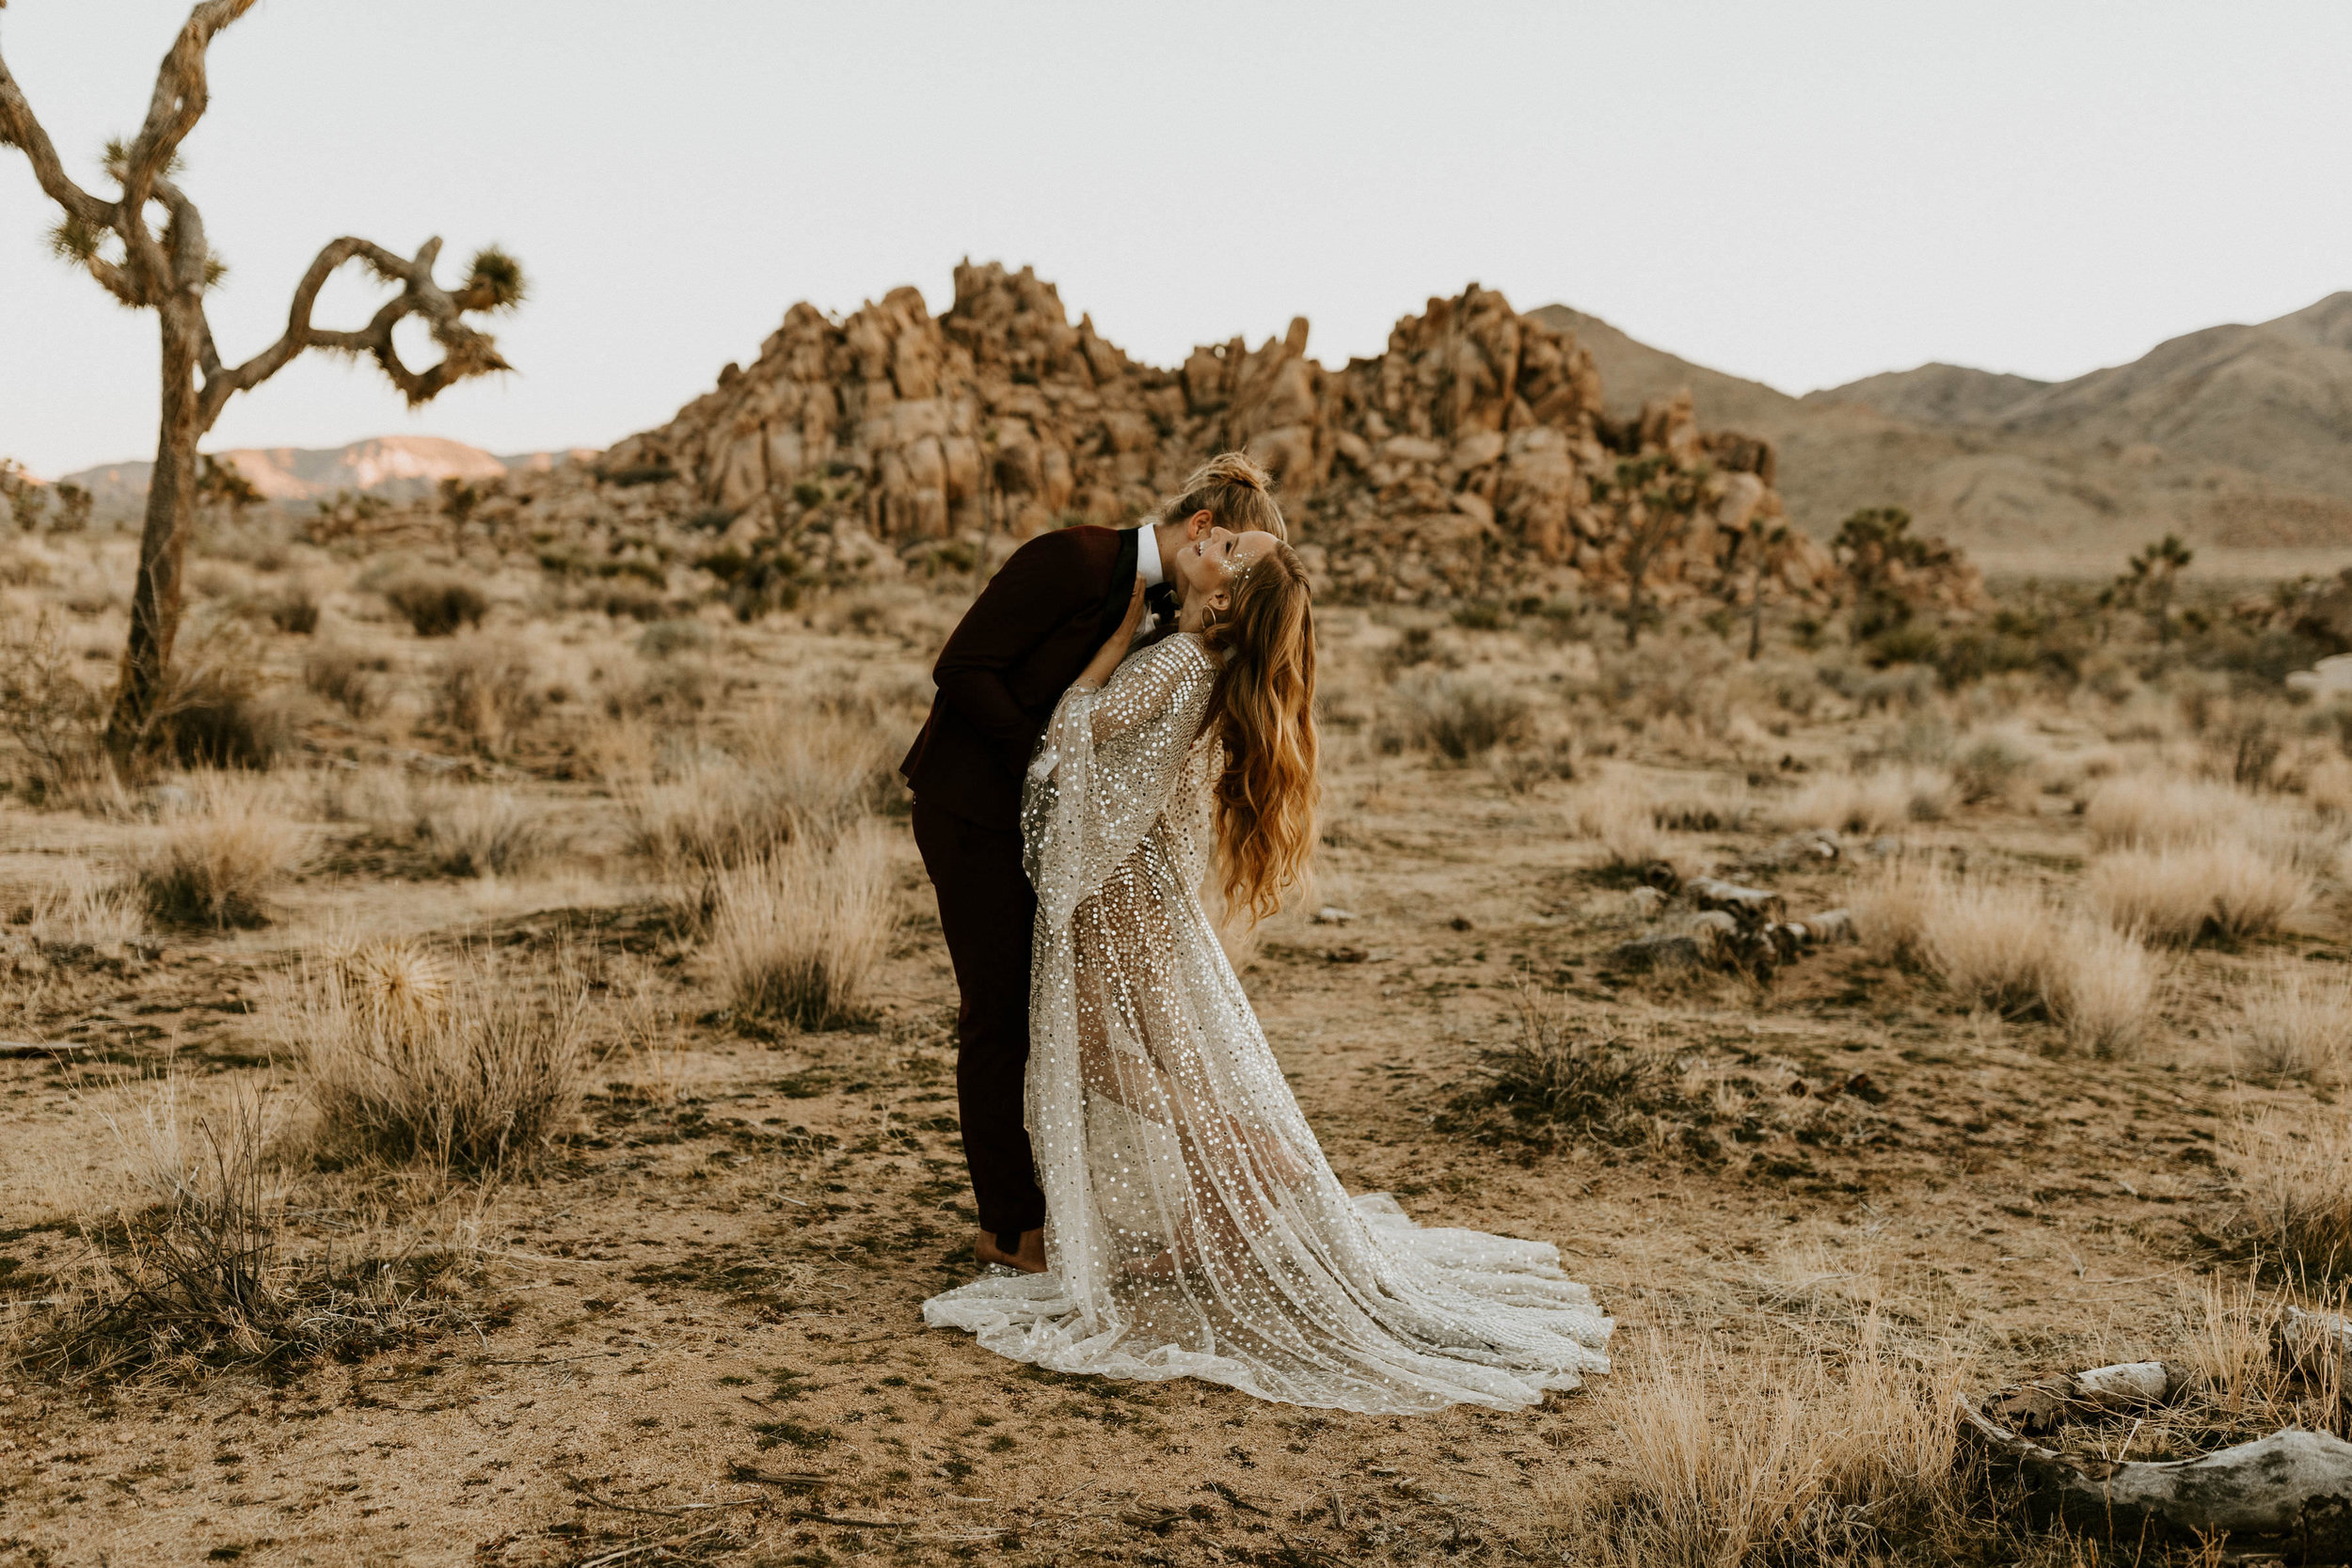 Bride and Groom at NYE Elopement in Joshua Tree National Park in California